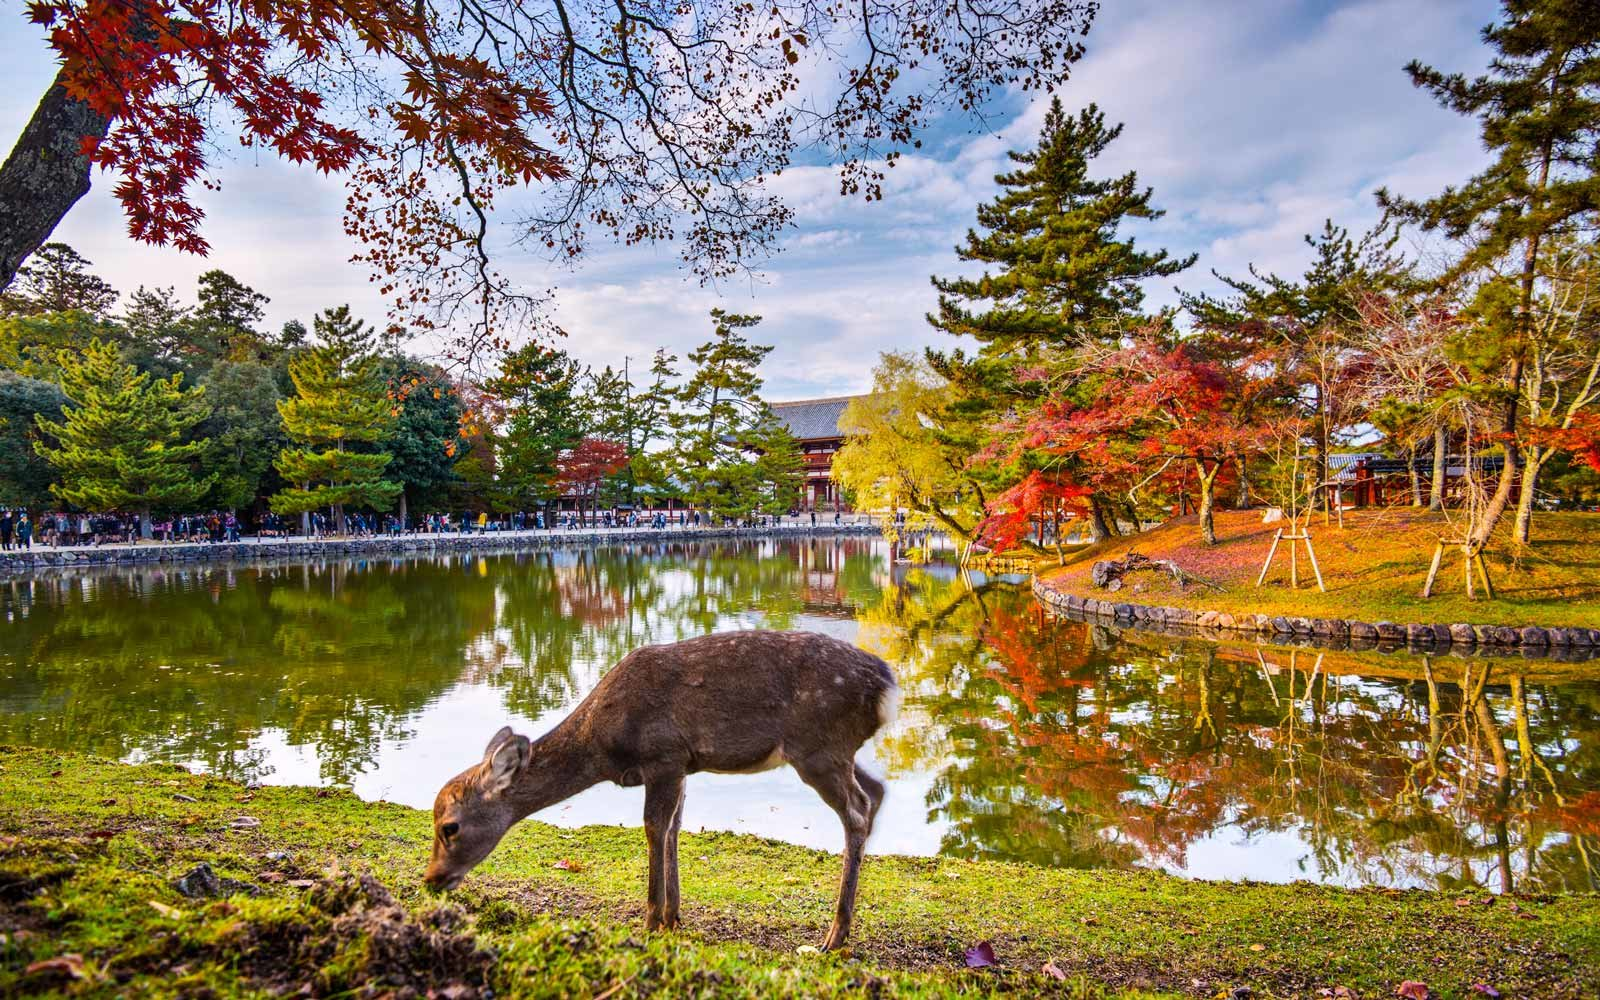 Deer grazes near Todai-ji Temple in Nara, Japan.